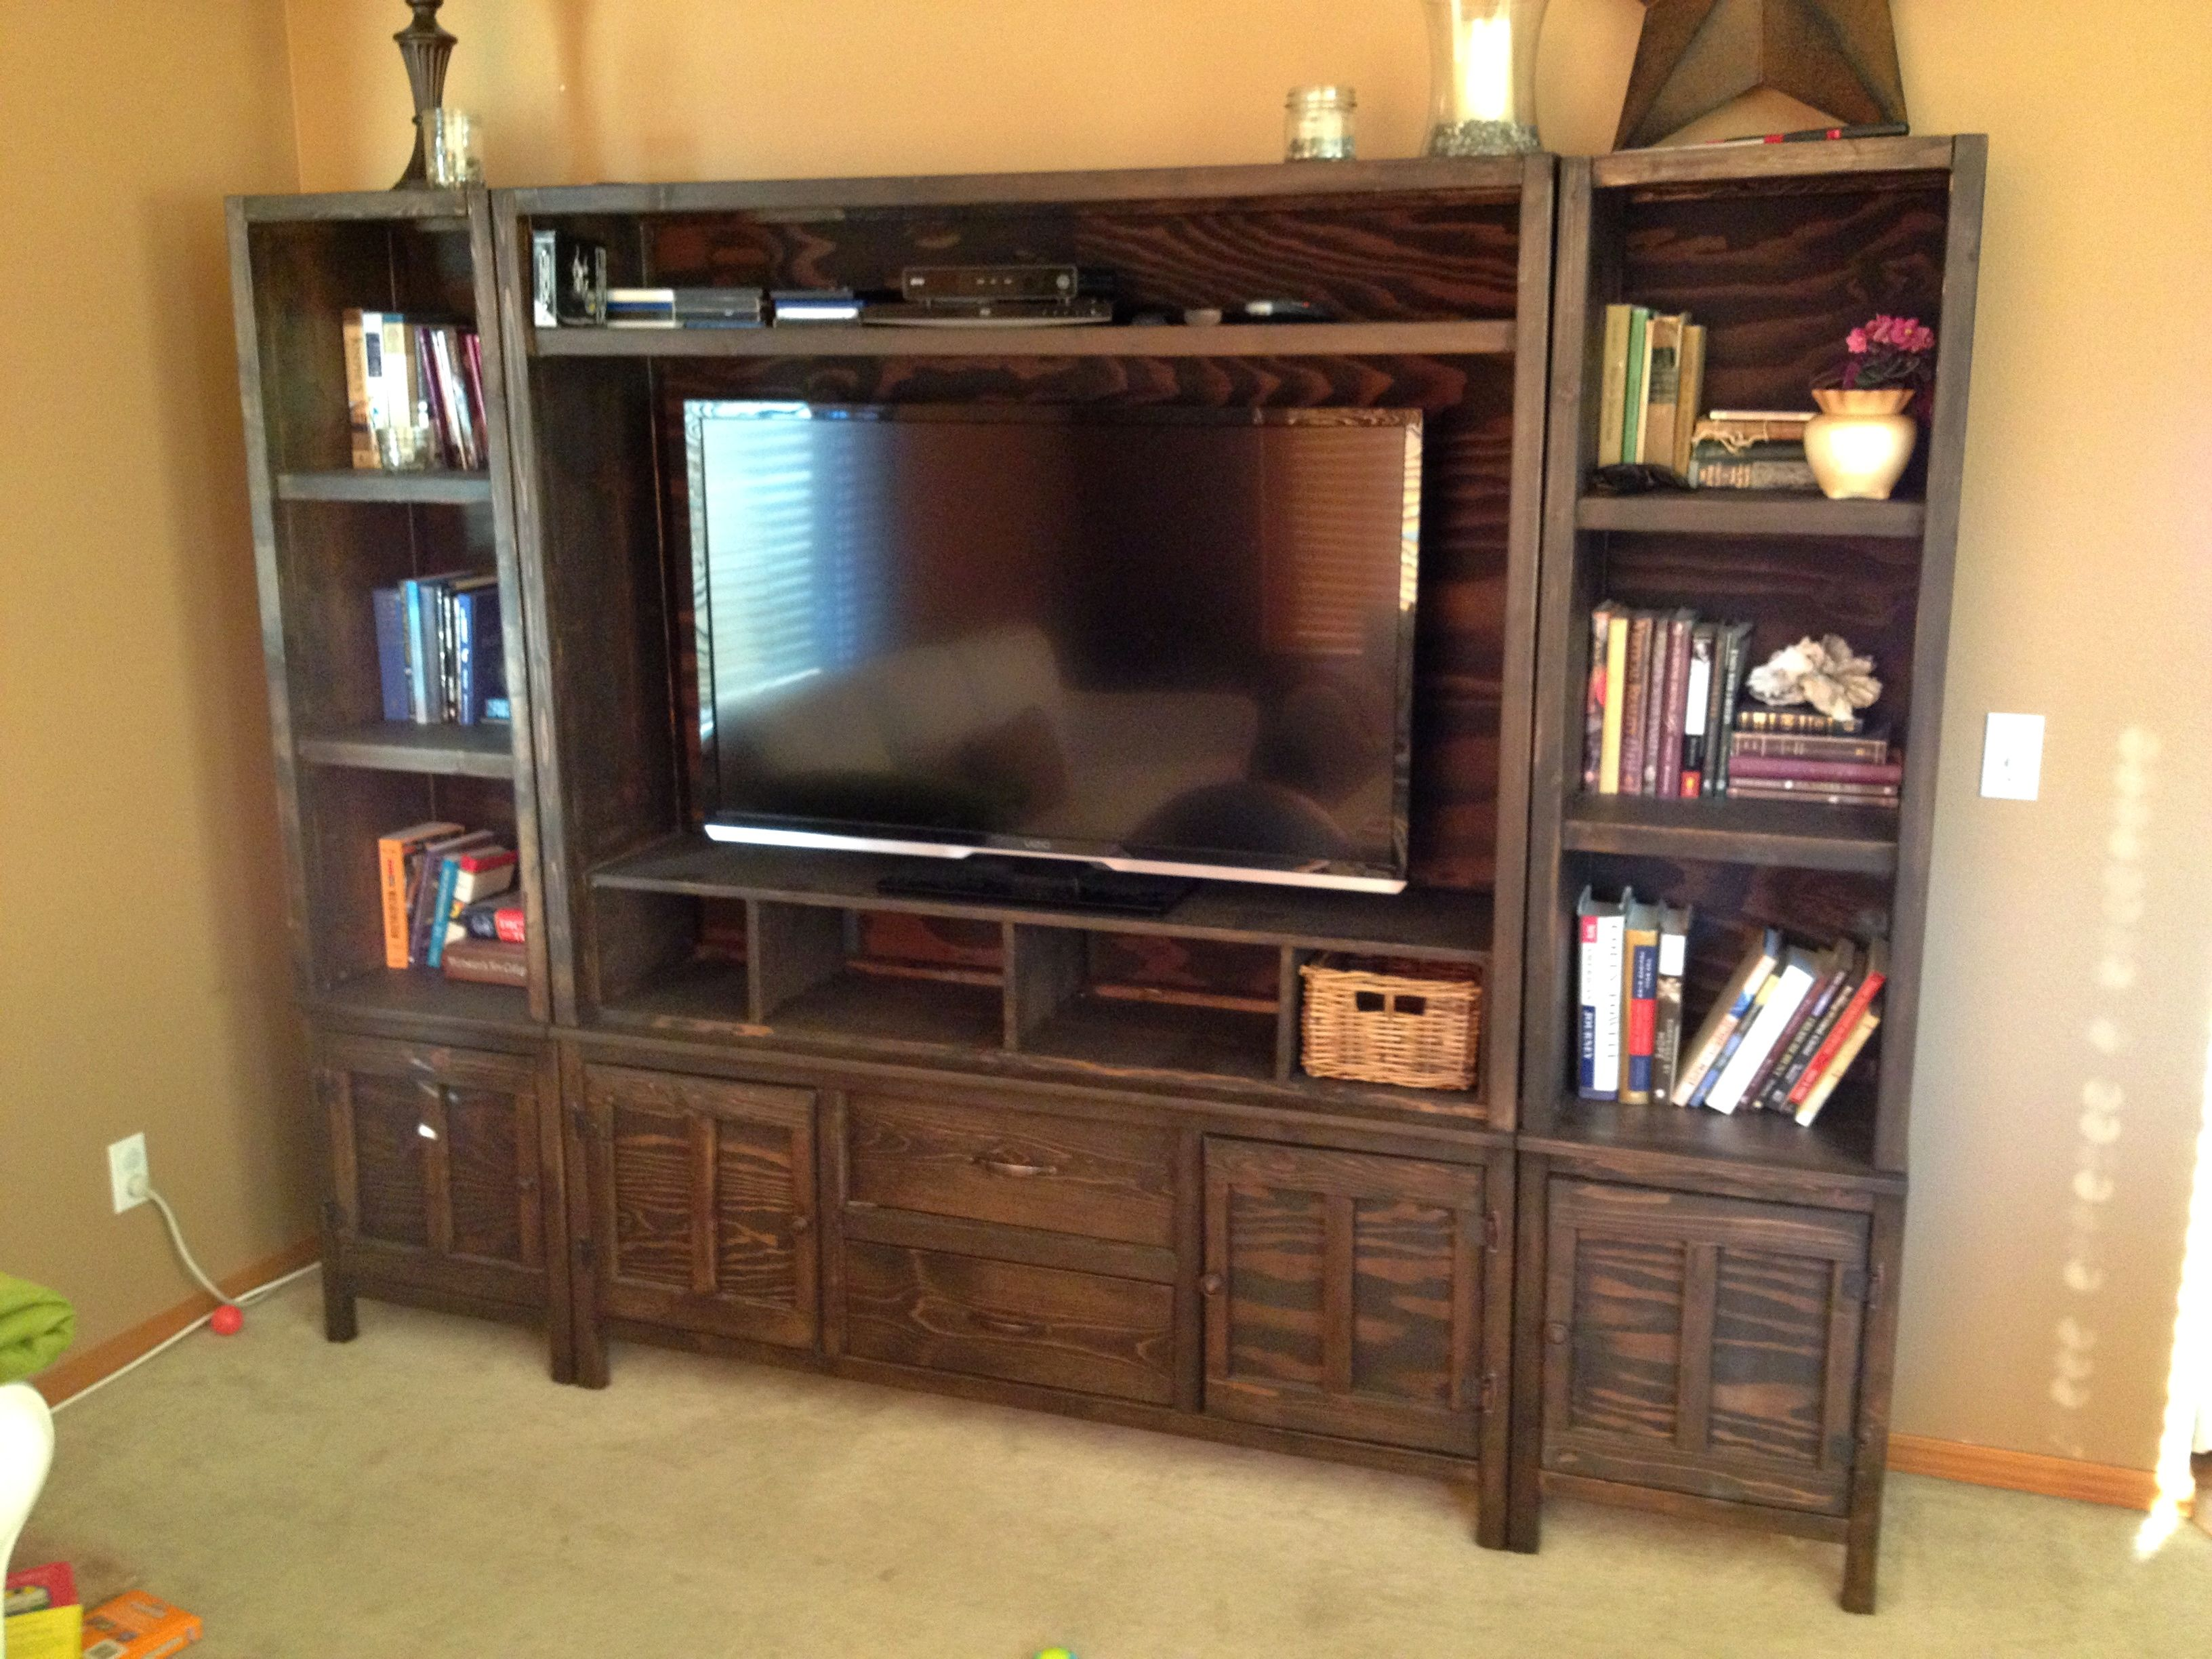 Entertainment center do it yourself home projects from ana white entertainment center do it yourself home projects from ana white solutioingenieria Choice Image